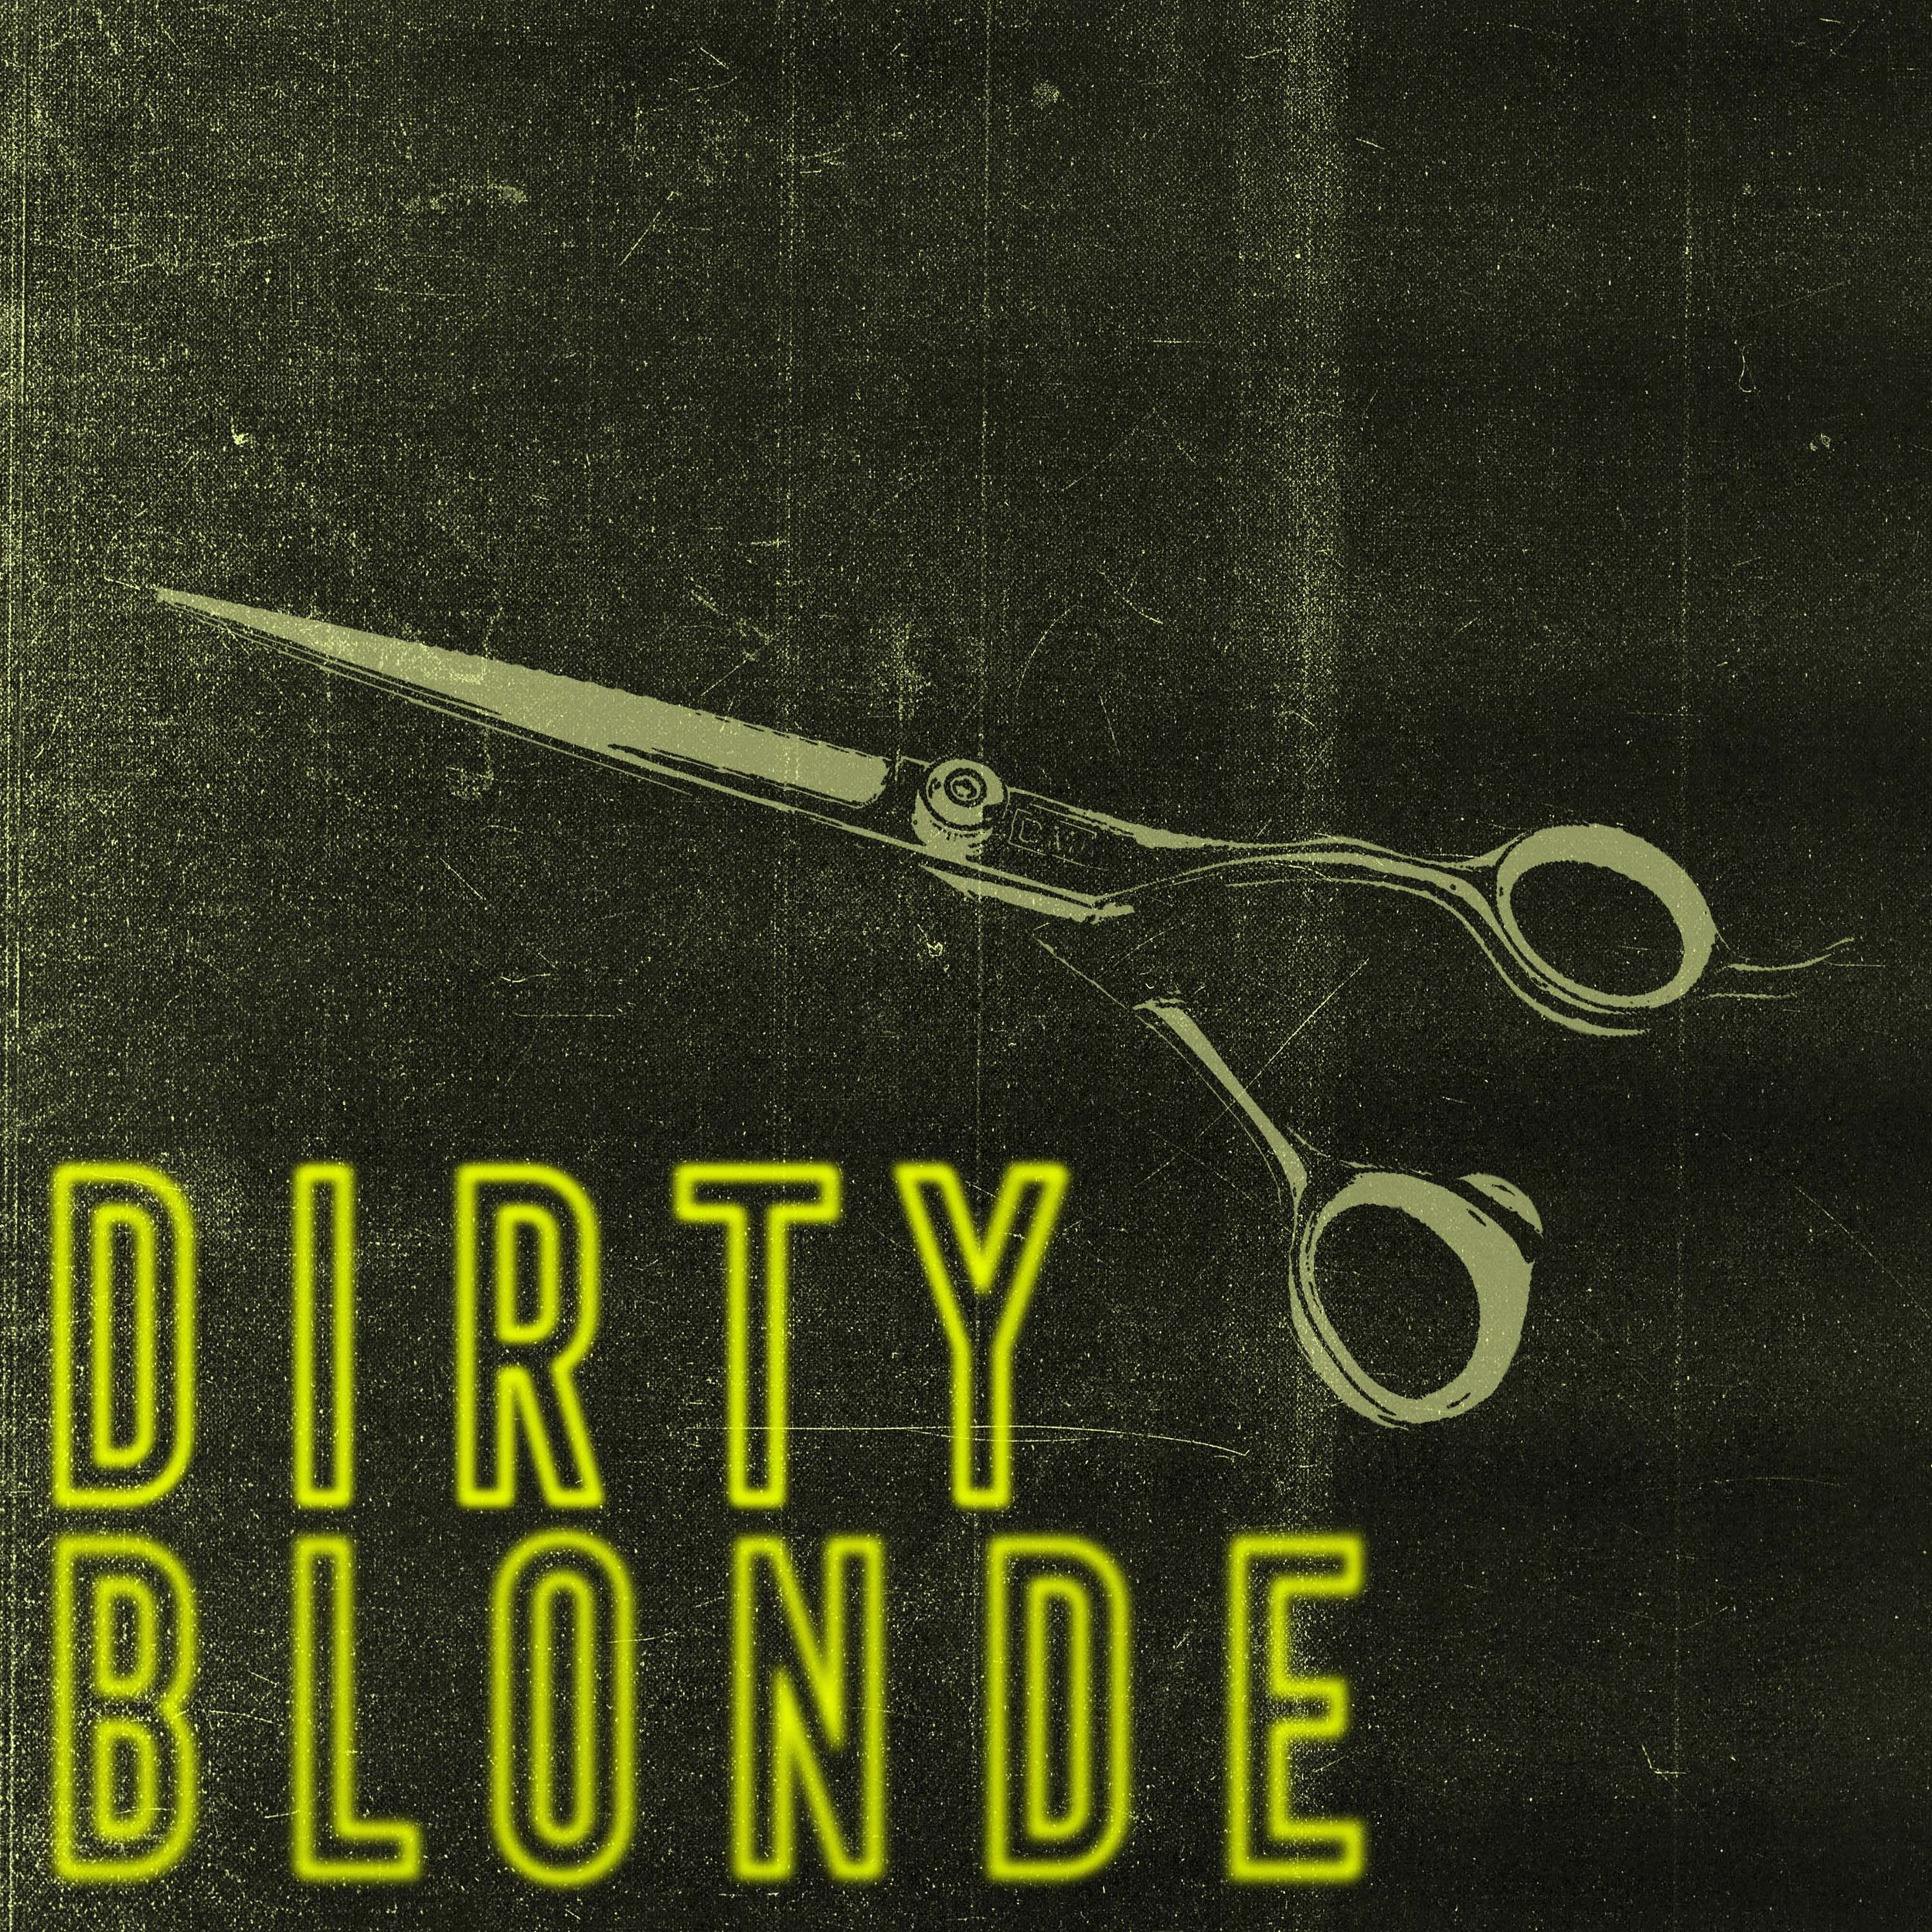 DirtyBlonde_Scissors12.jpg